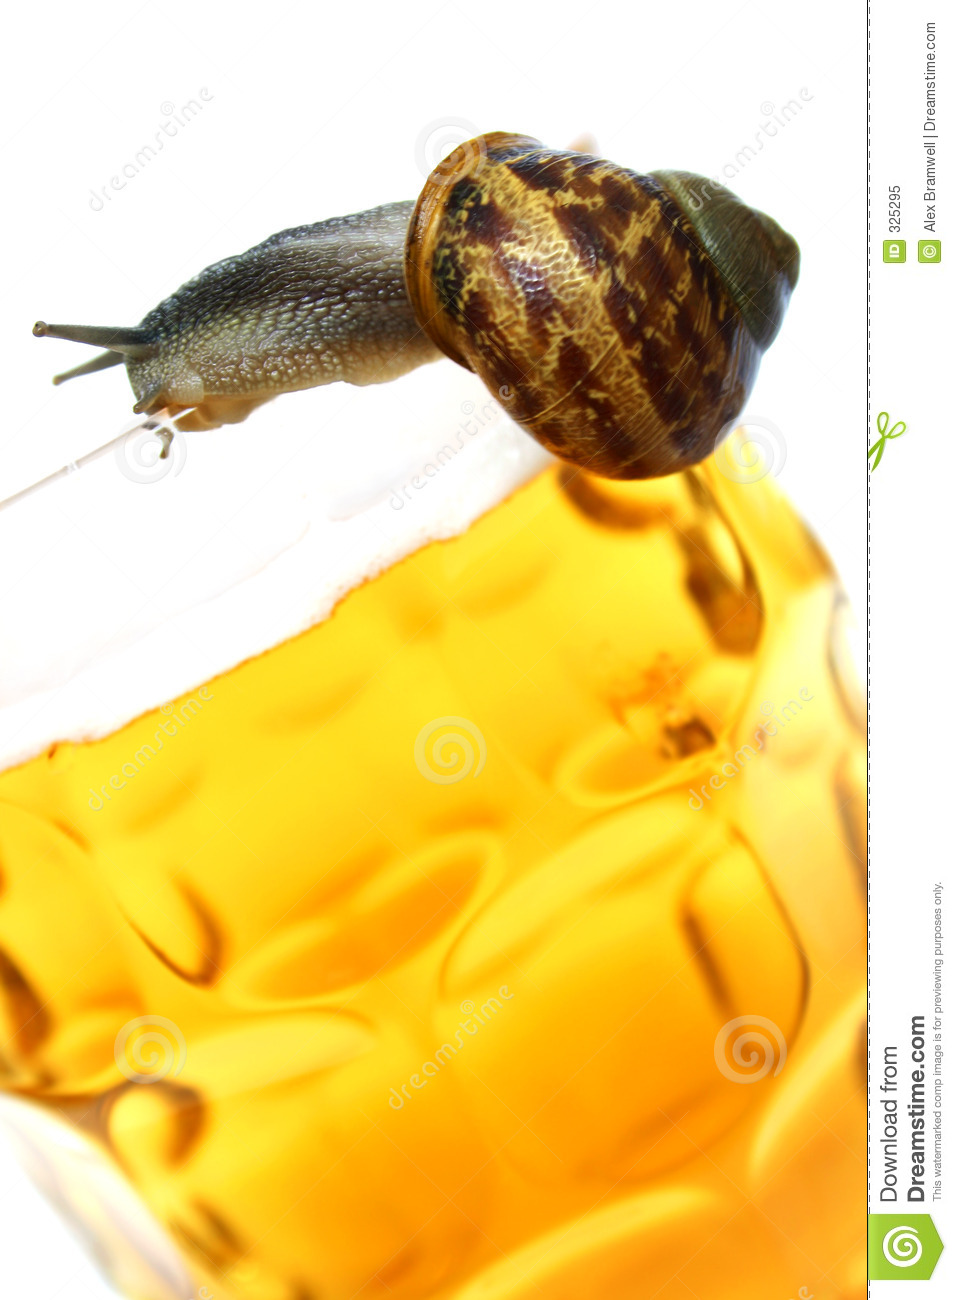 Snail on Beer